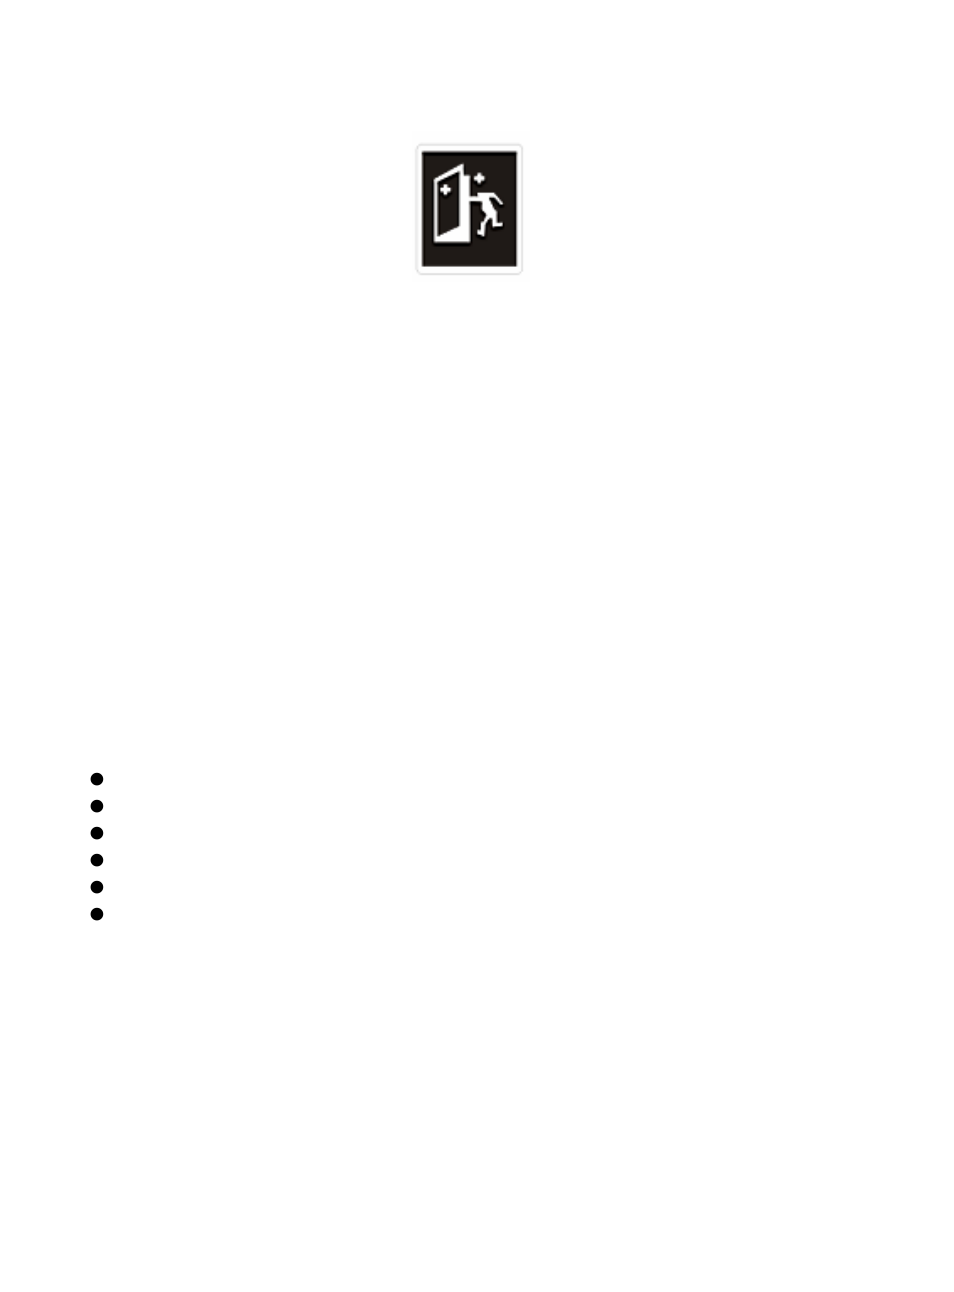 CURTIS MPS1015 DRIVER DOWNLOAD